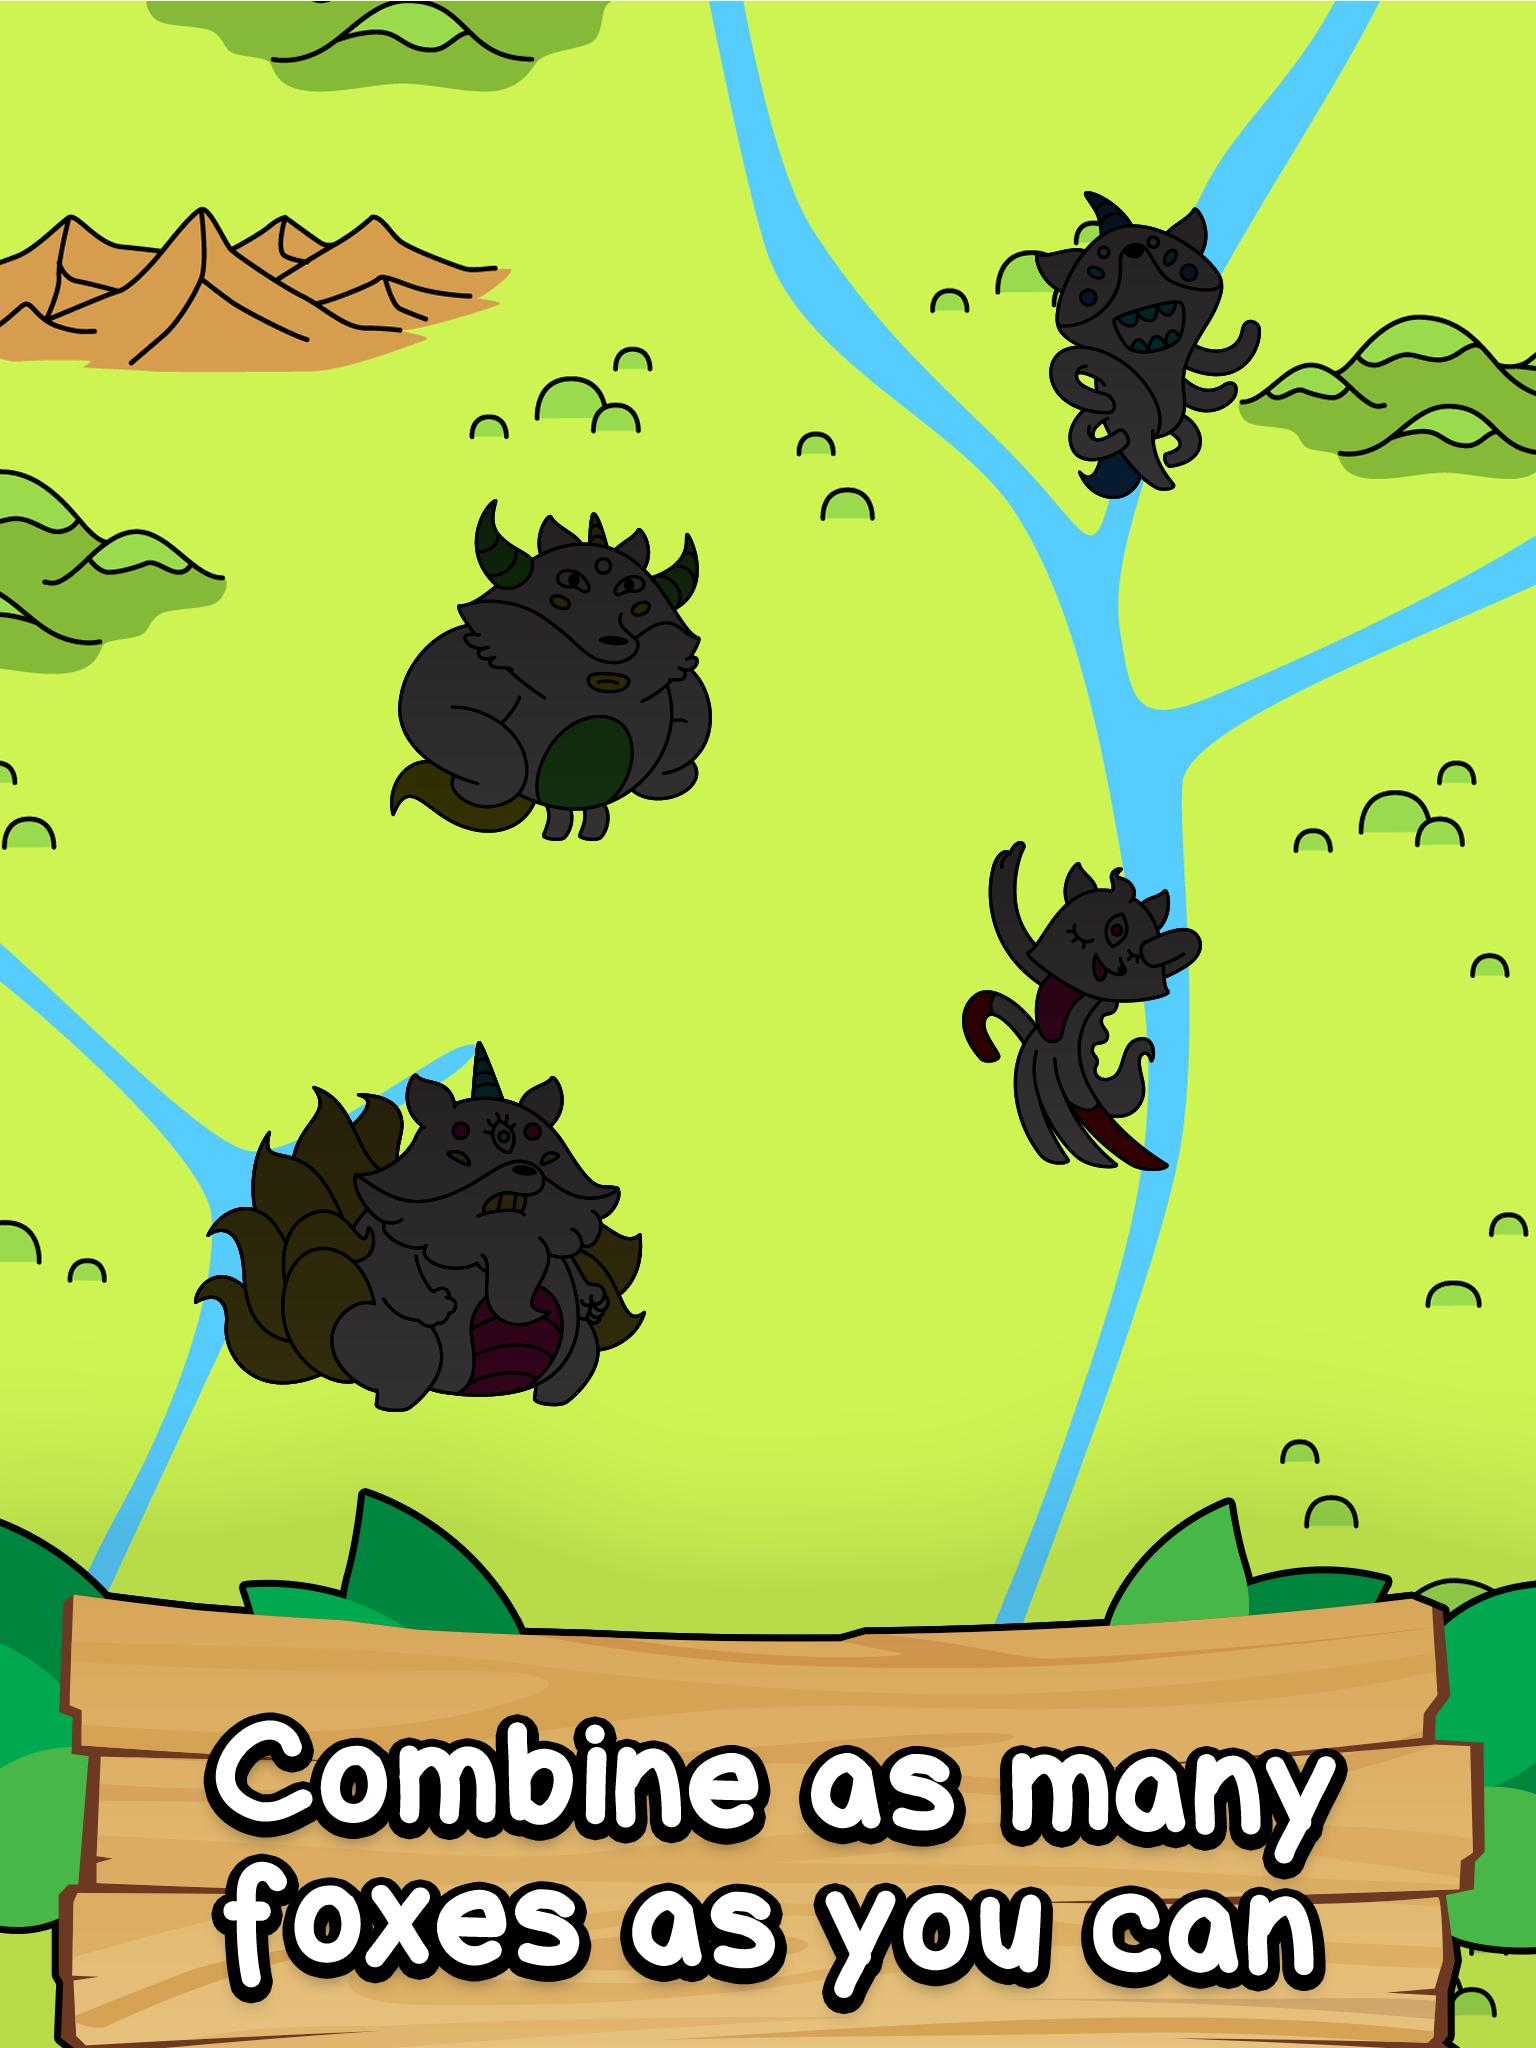 Fox Evolution The Secret of The Mutant Foxes 1.0.5 Screenshot 11